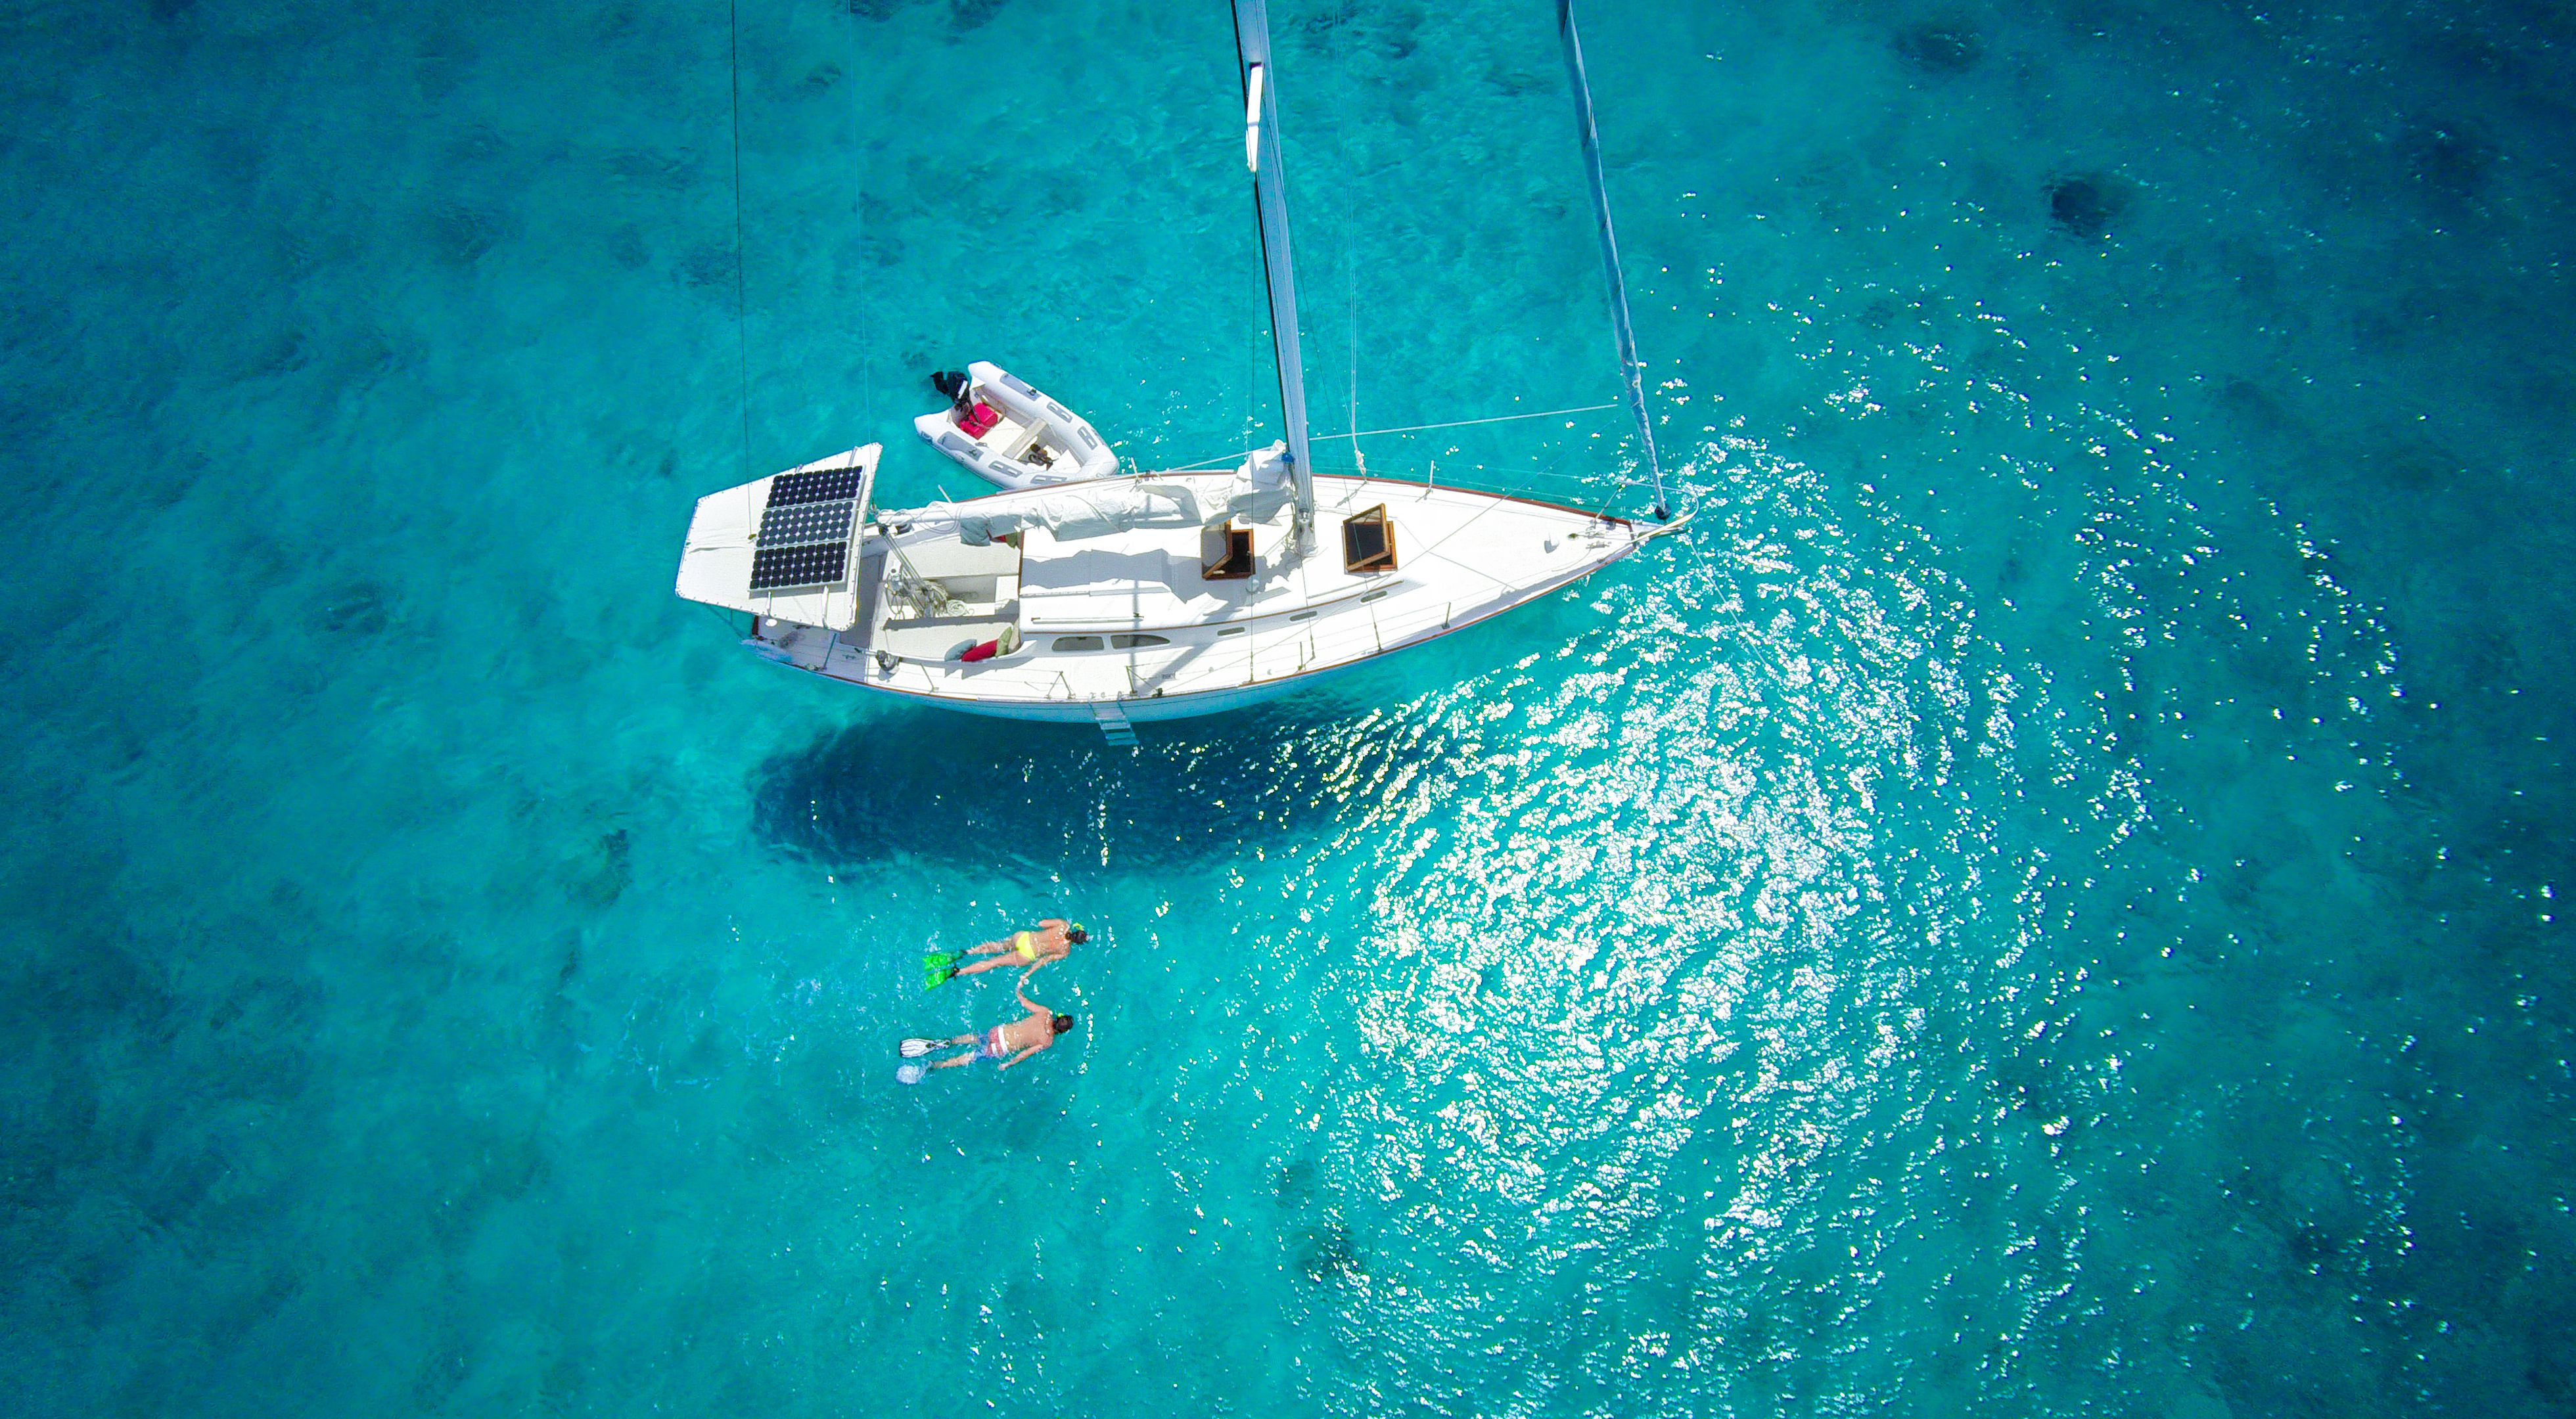 How to Boat Share Your Next Caribbean Yacht Adventure